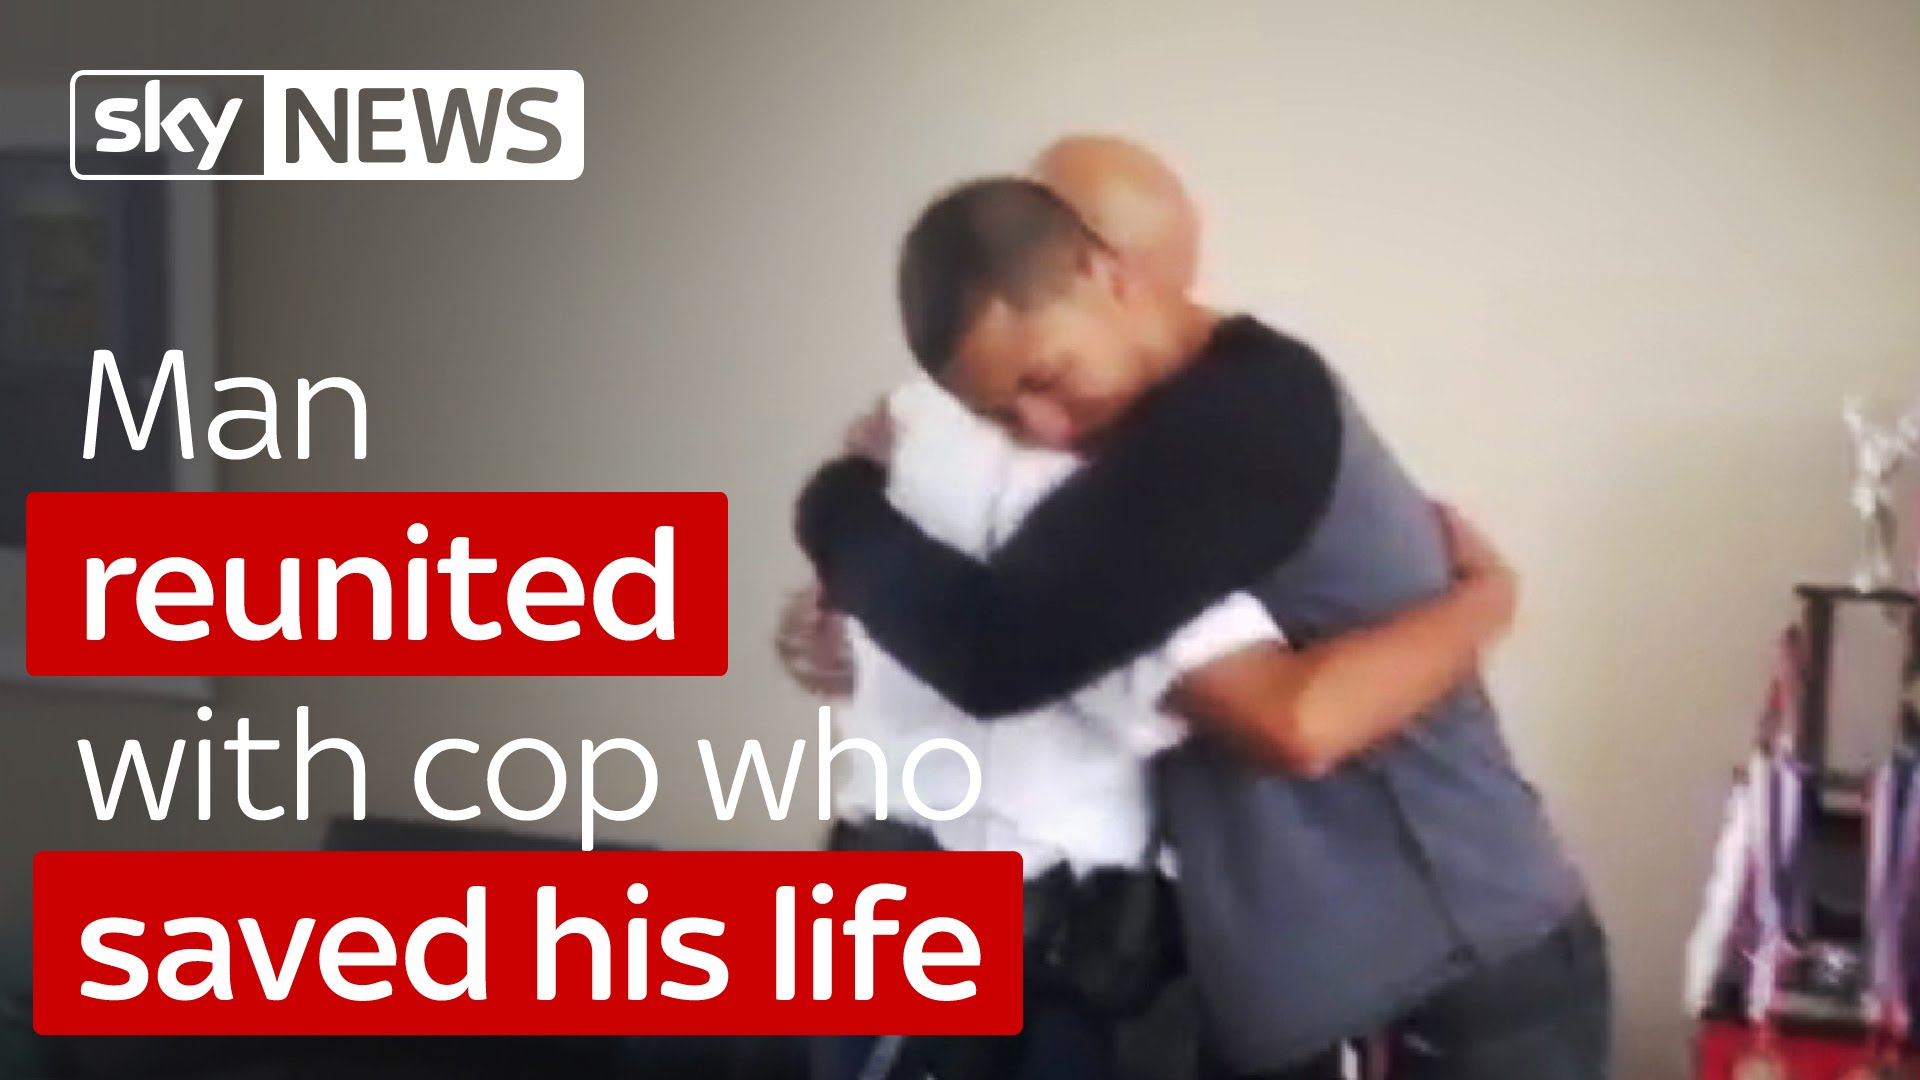 Man Reunited With Cop Who Saved His Life 9